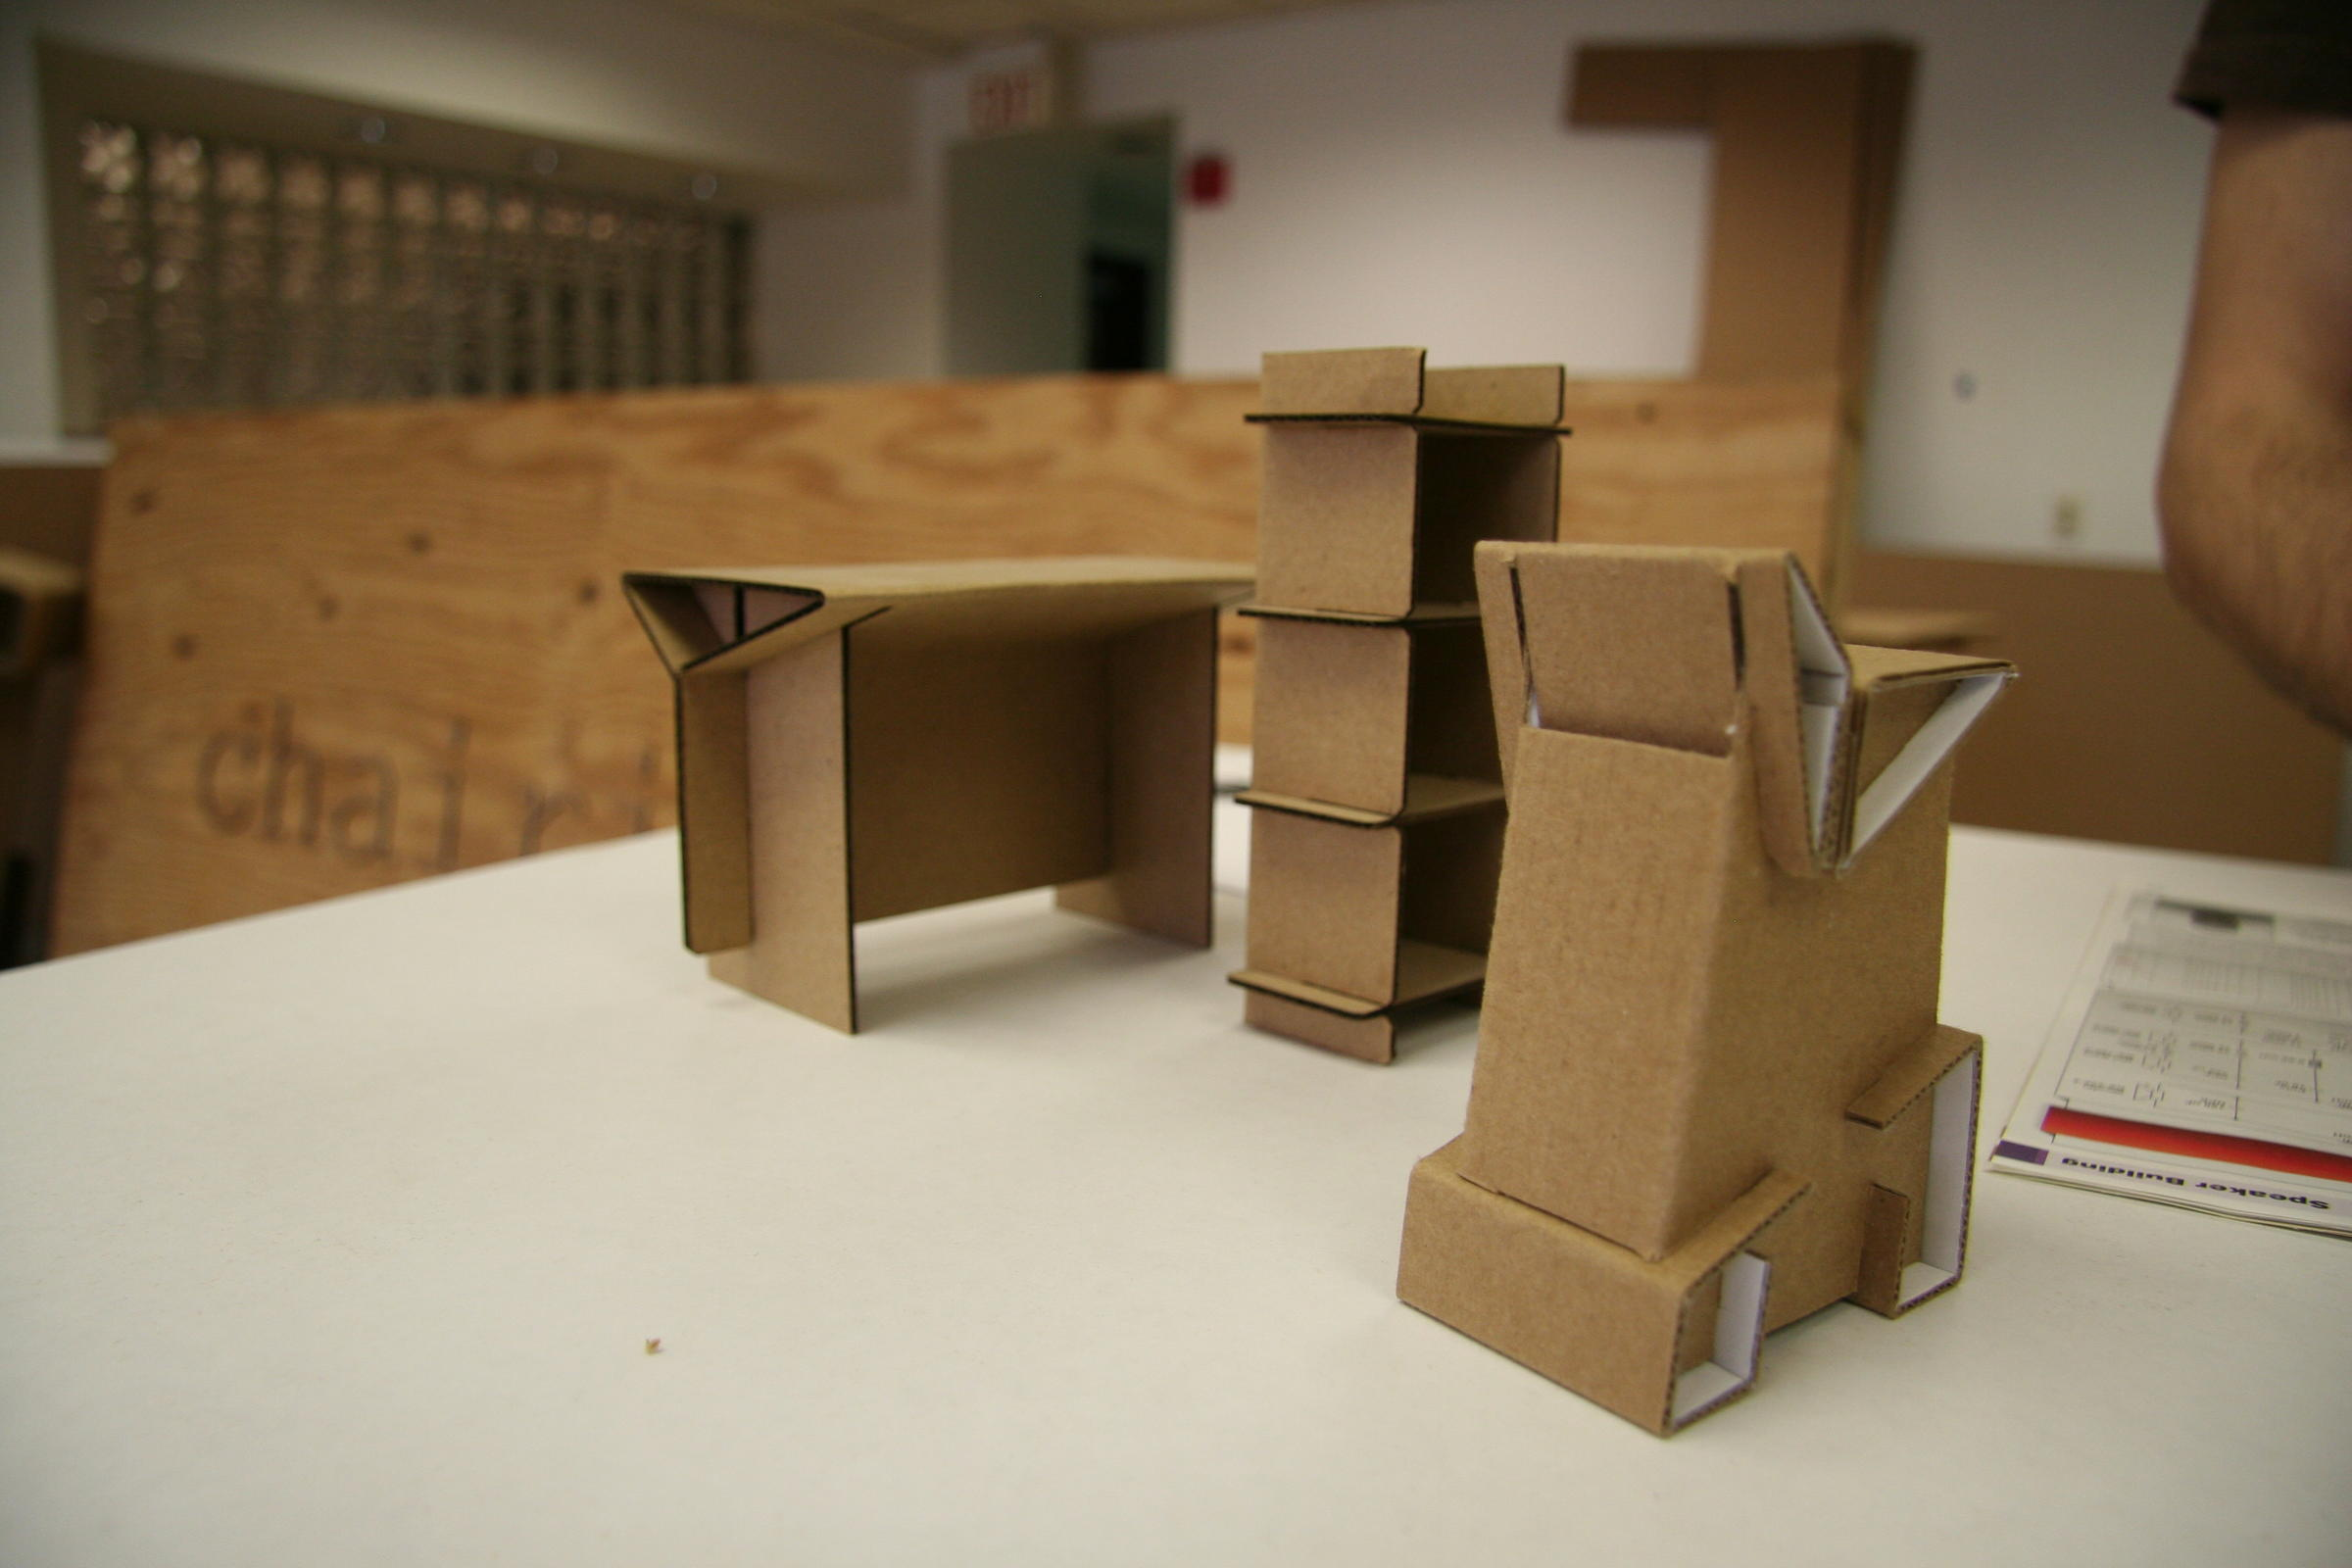 How To Make A Cardboard Chair New Haven Cardboard Furniture Company Goes Beyond One Man